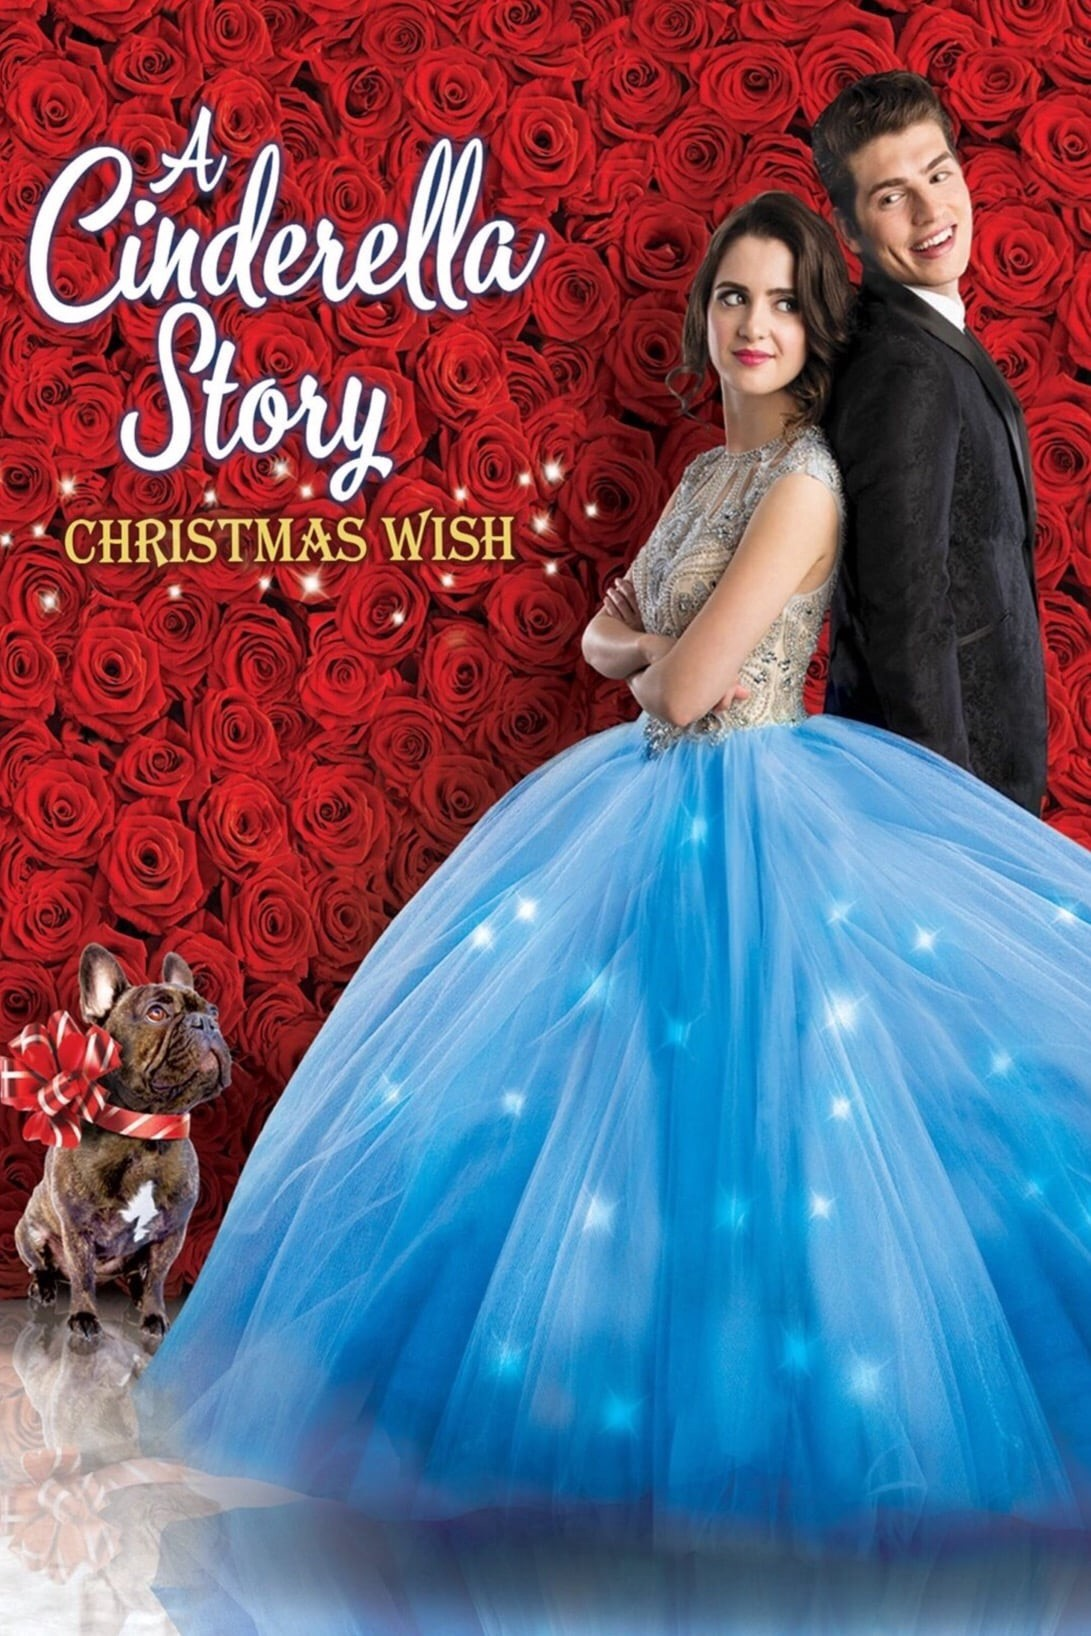 another cinderella story watch full movie online free